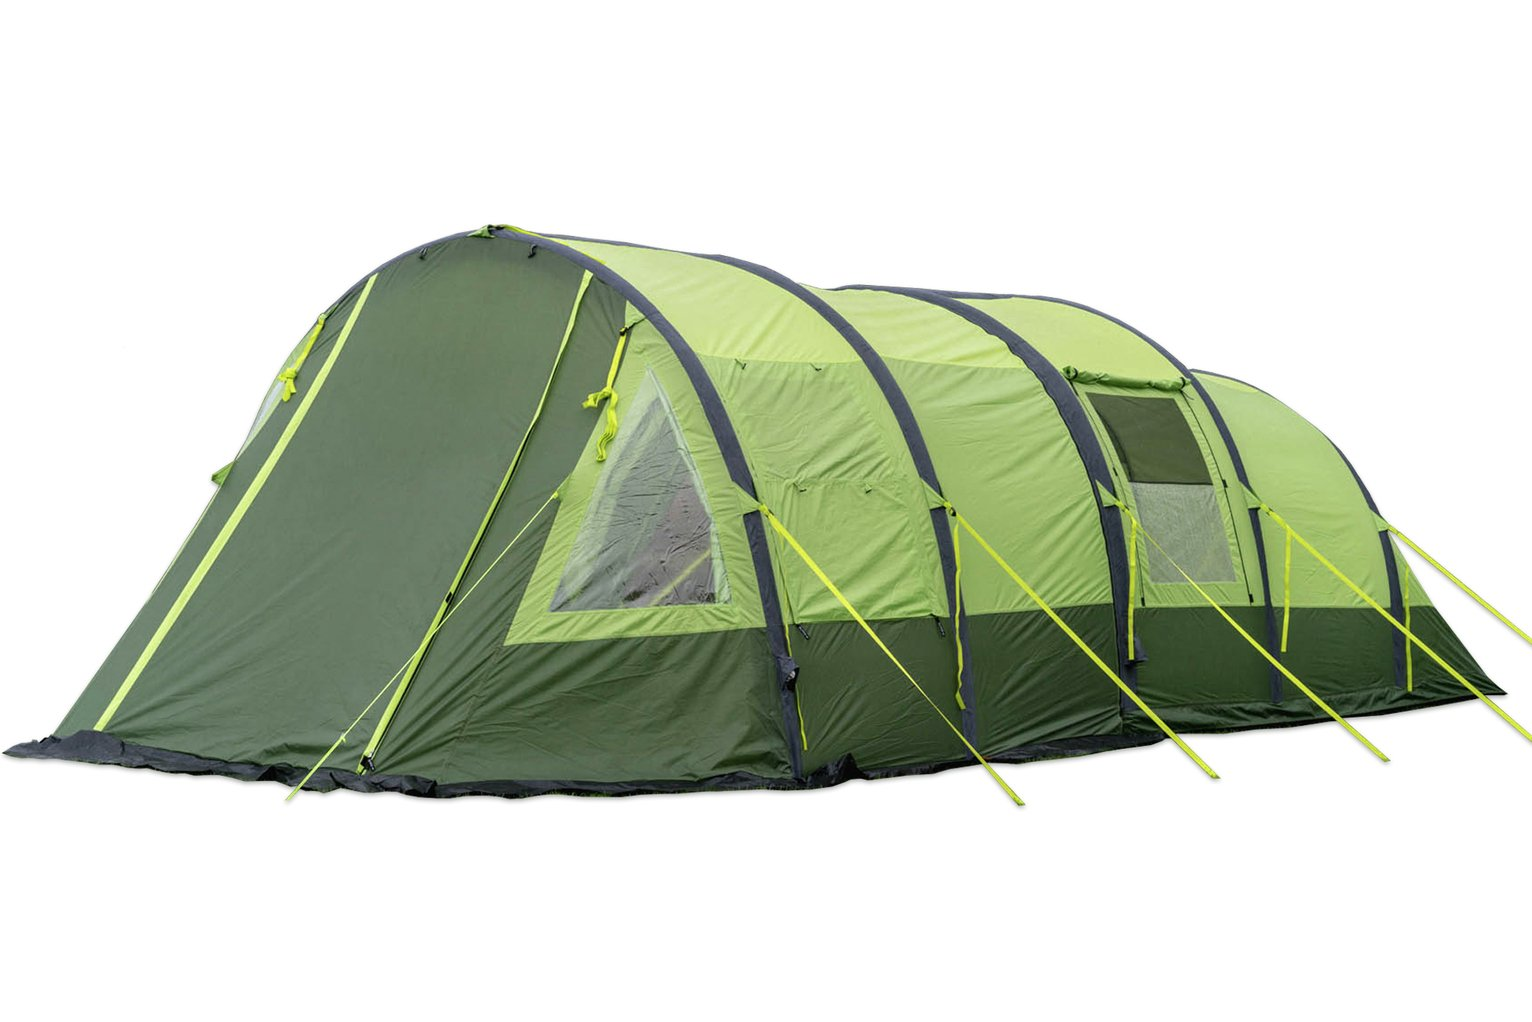 Olpro Abberley XL Tent Extension